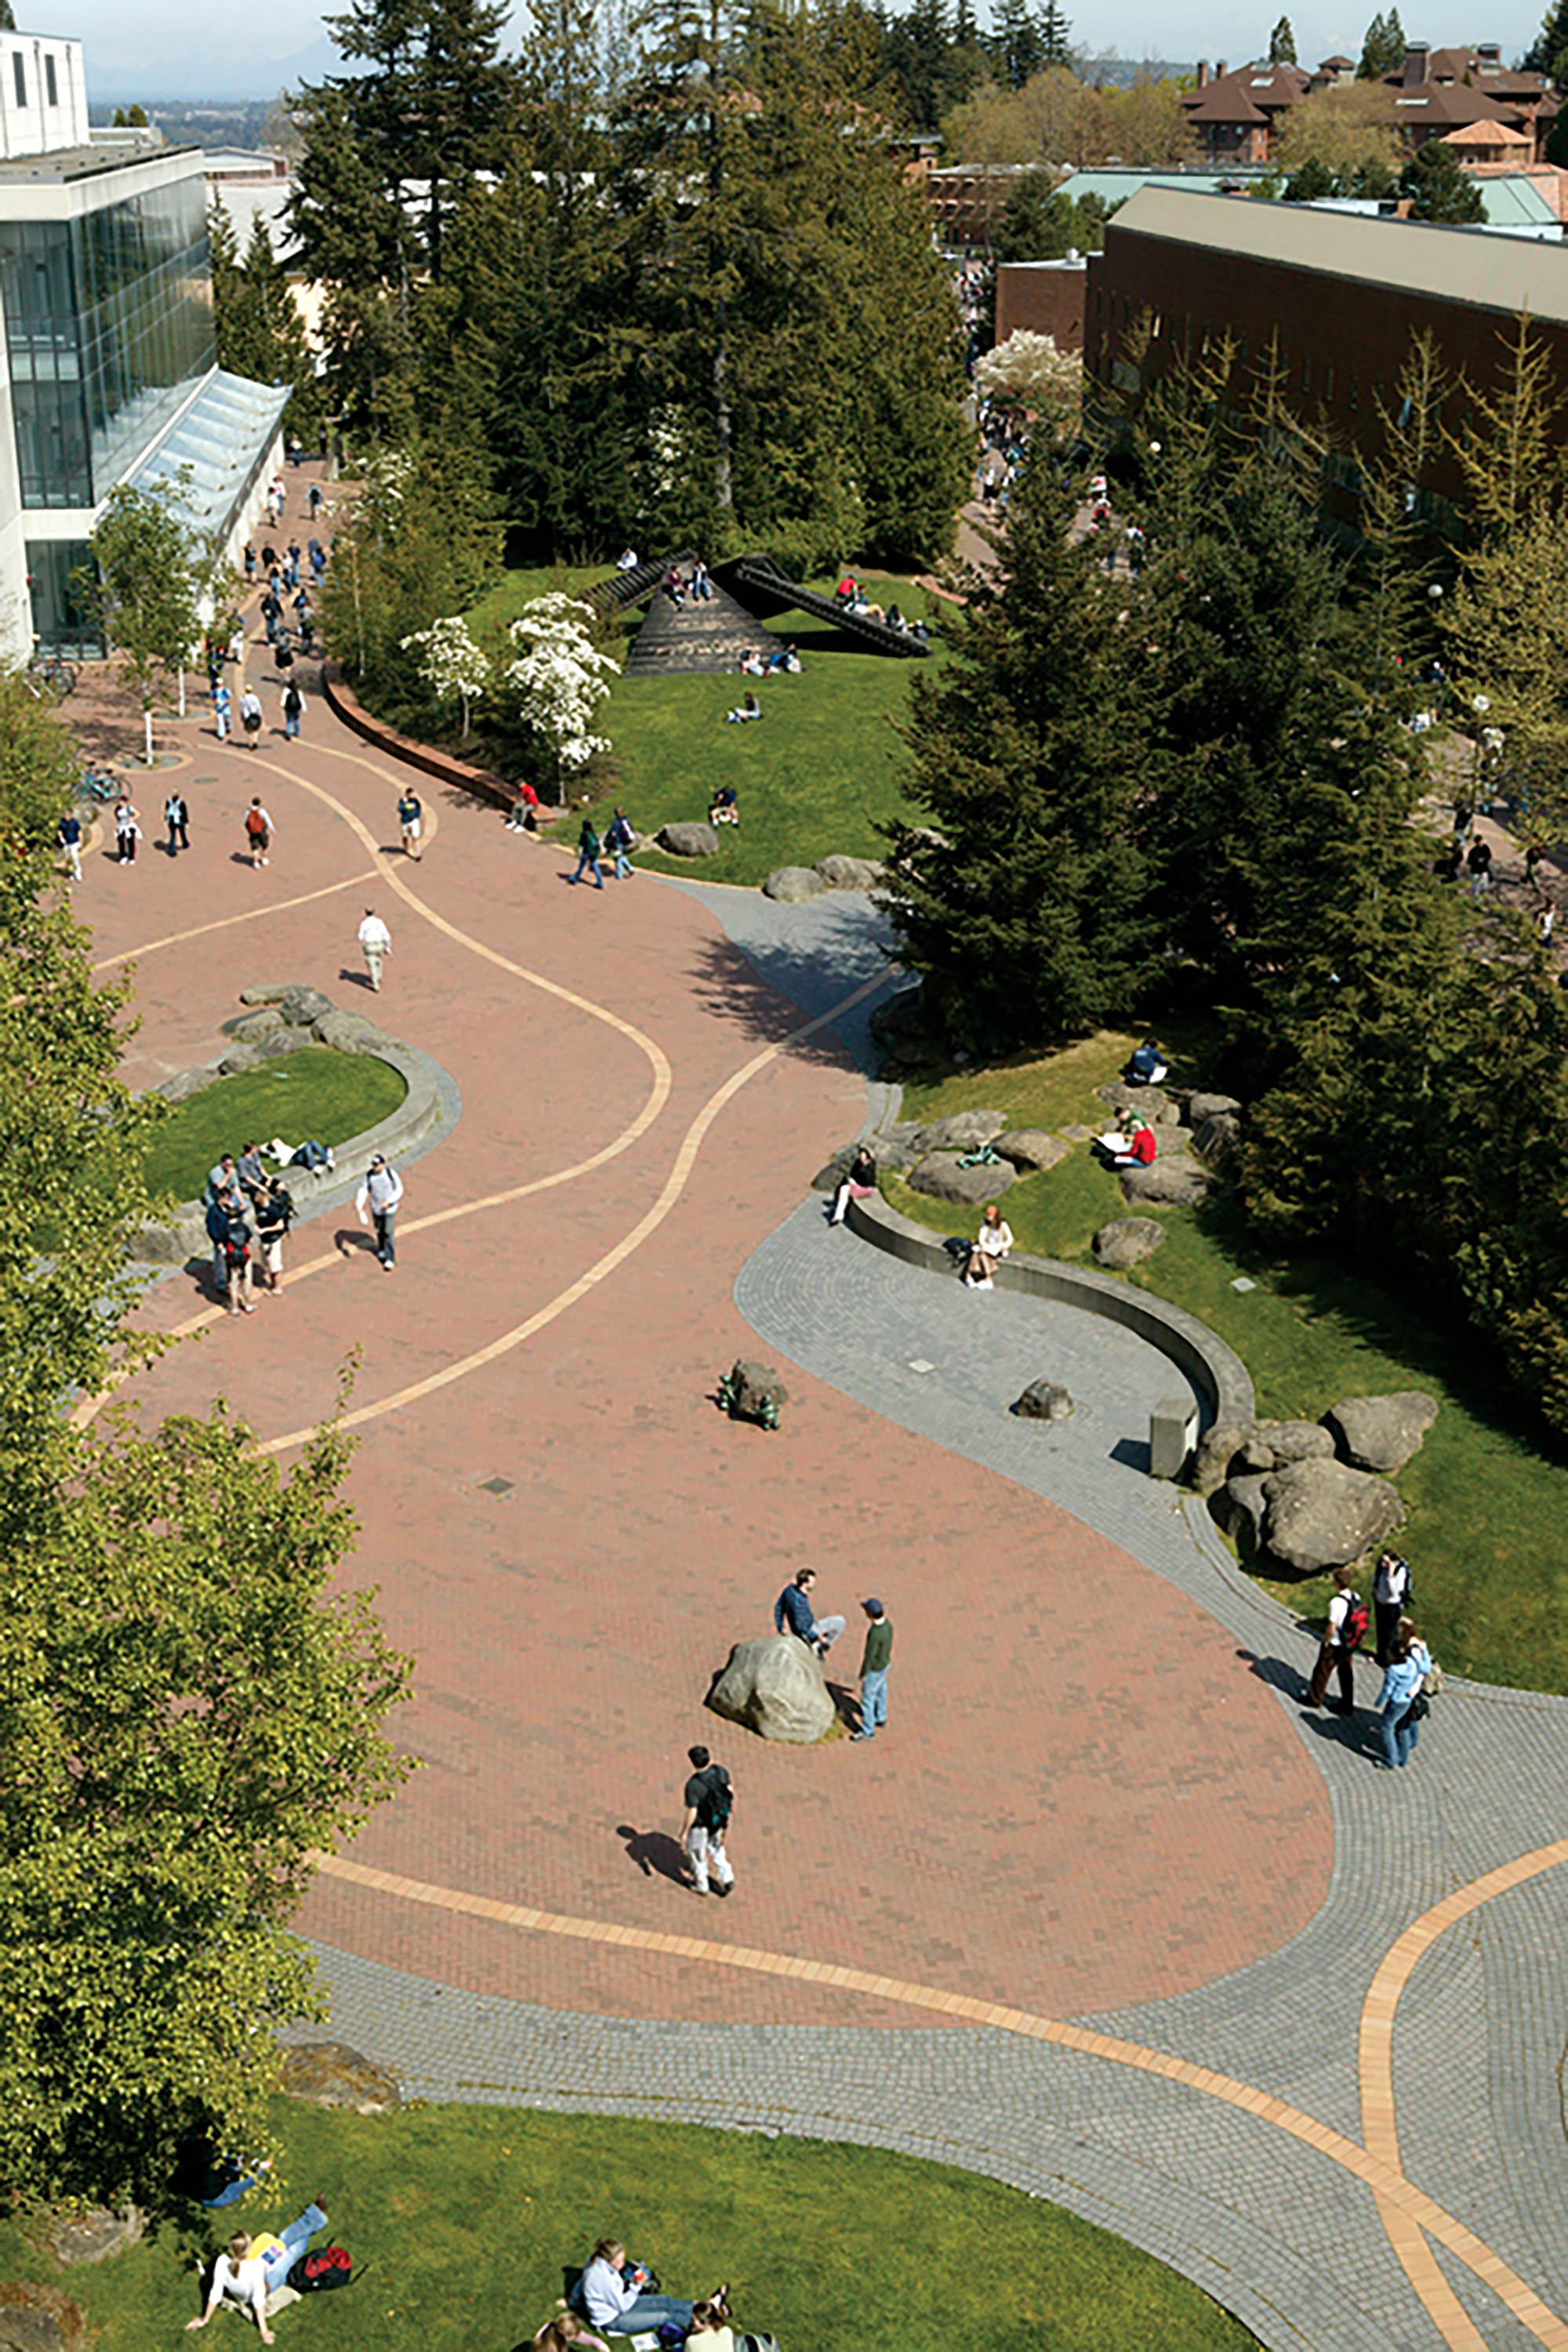 An image taken from a drone, looking down onto students walking along the wide paths between some of WWU's campus buildings. Some students are standing in groups, some sitting on benches along the path, and others are presumably walking to their next class.